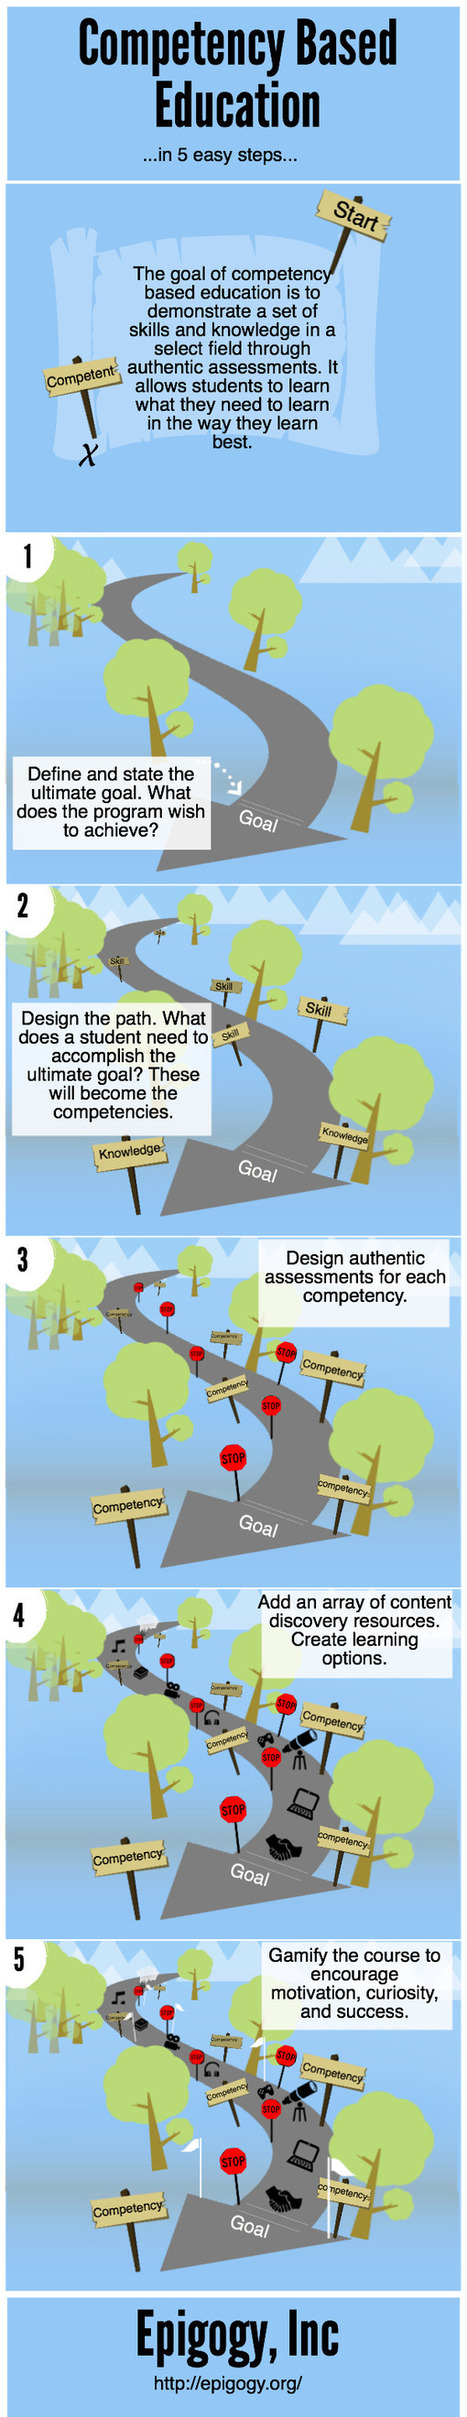 Competency Based Education... in 5 easy steps |  An Ethical Island | Digital Speak | Scoop.it